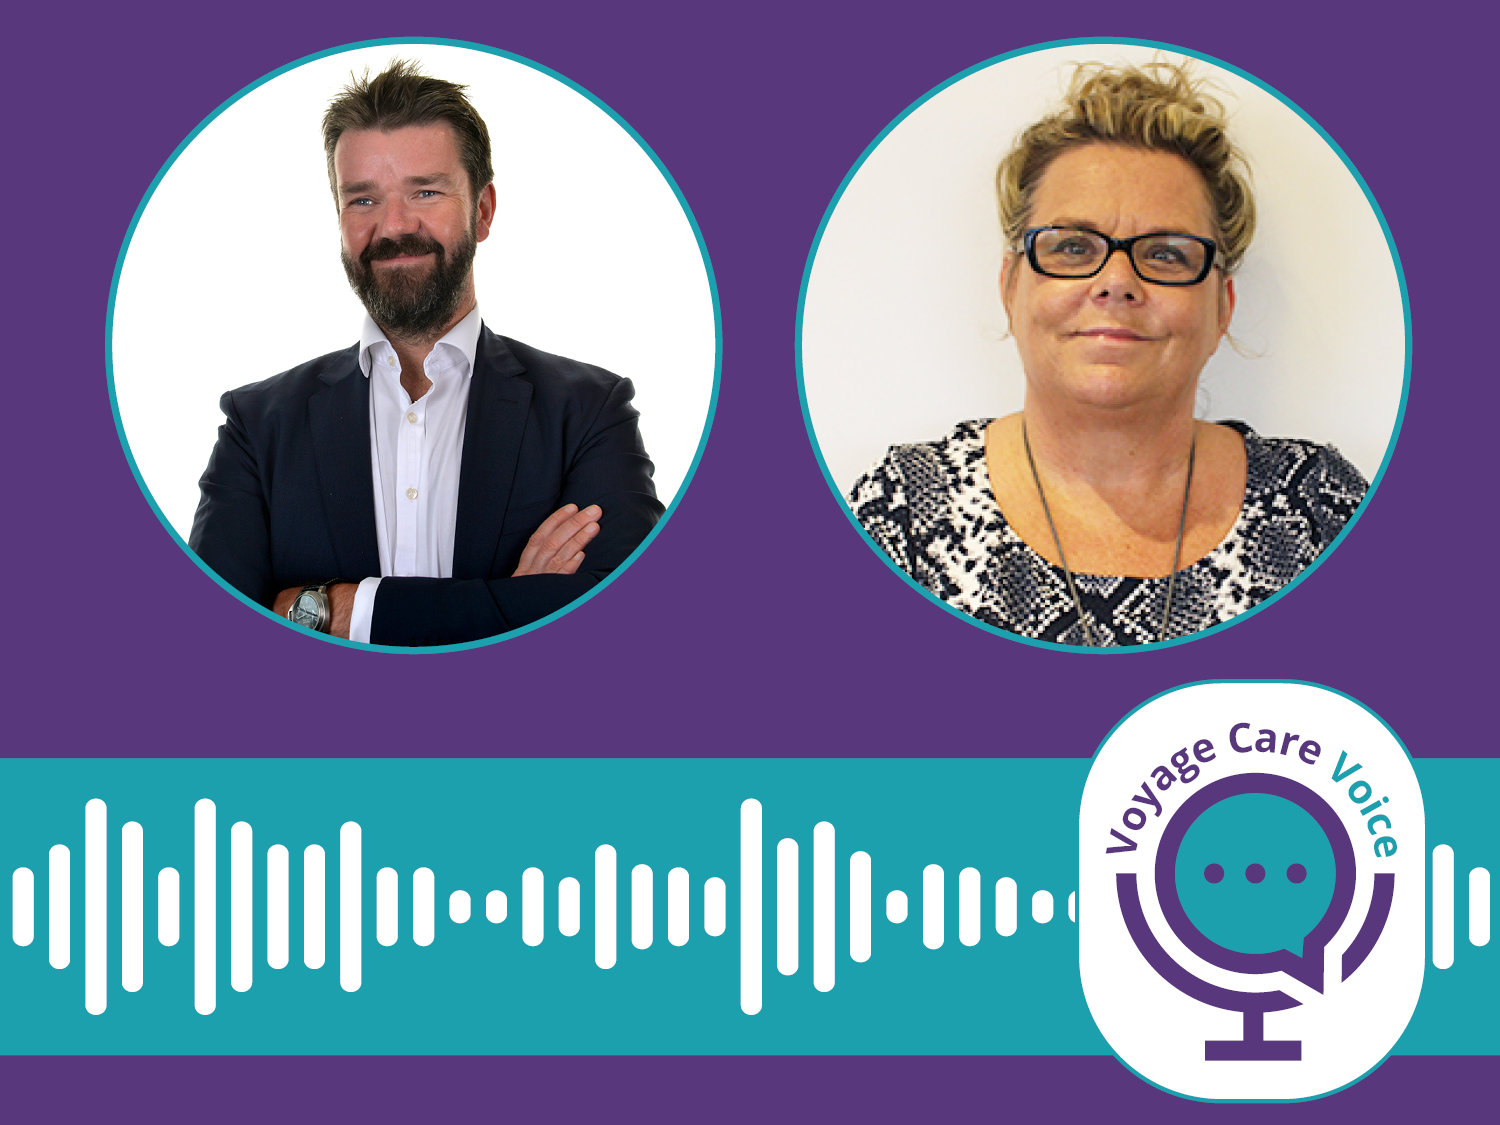 Voyage Care Voice – S2E1 Part 2: Amanda Griffiths and Andrew Cannon discuss DNR orders and quality regulators